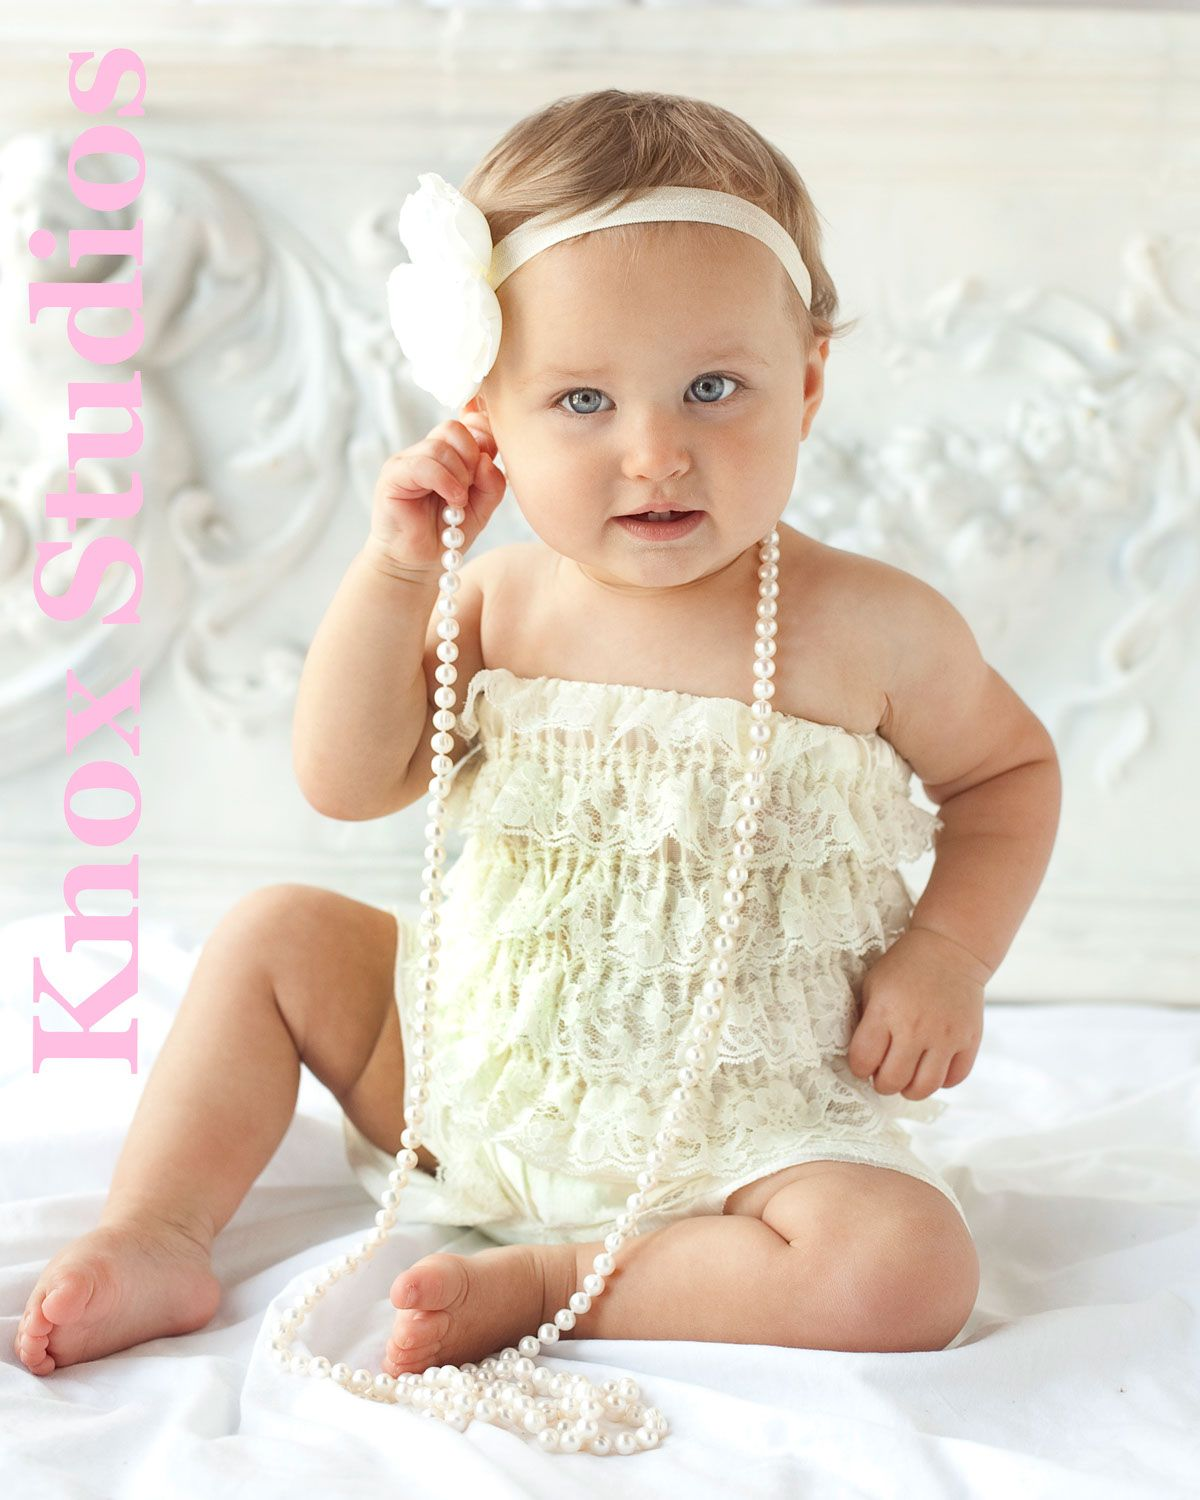 Our beautiful granddaughter! We love her so!